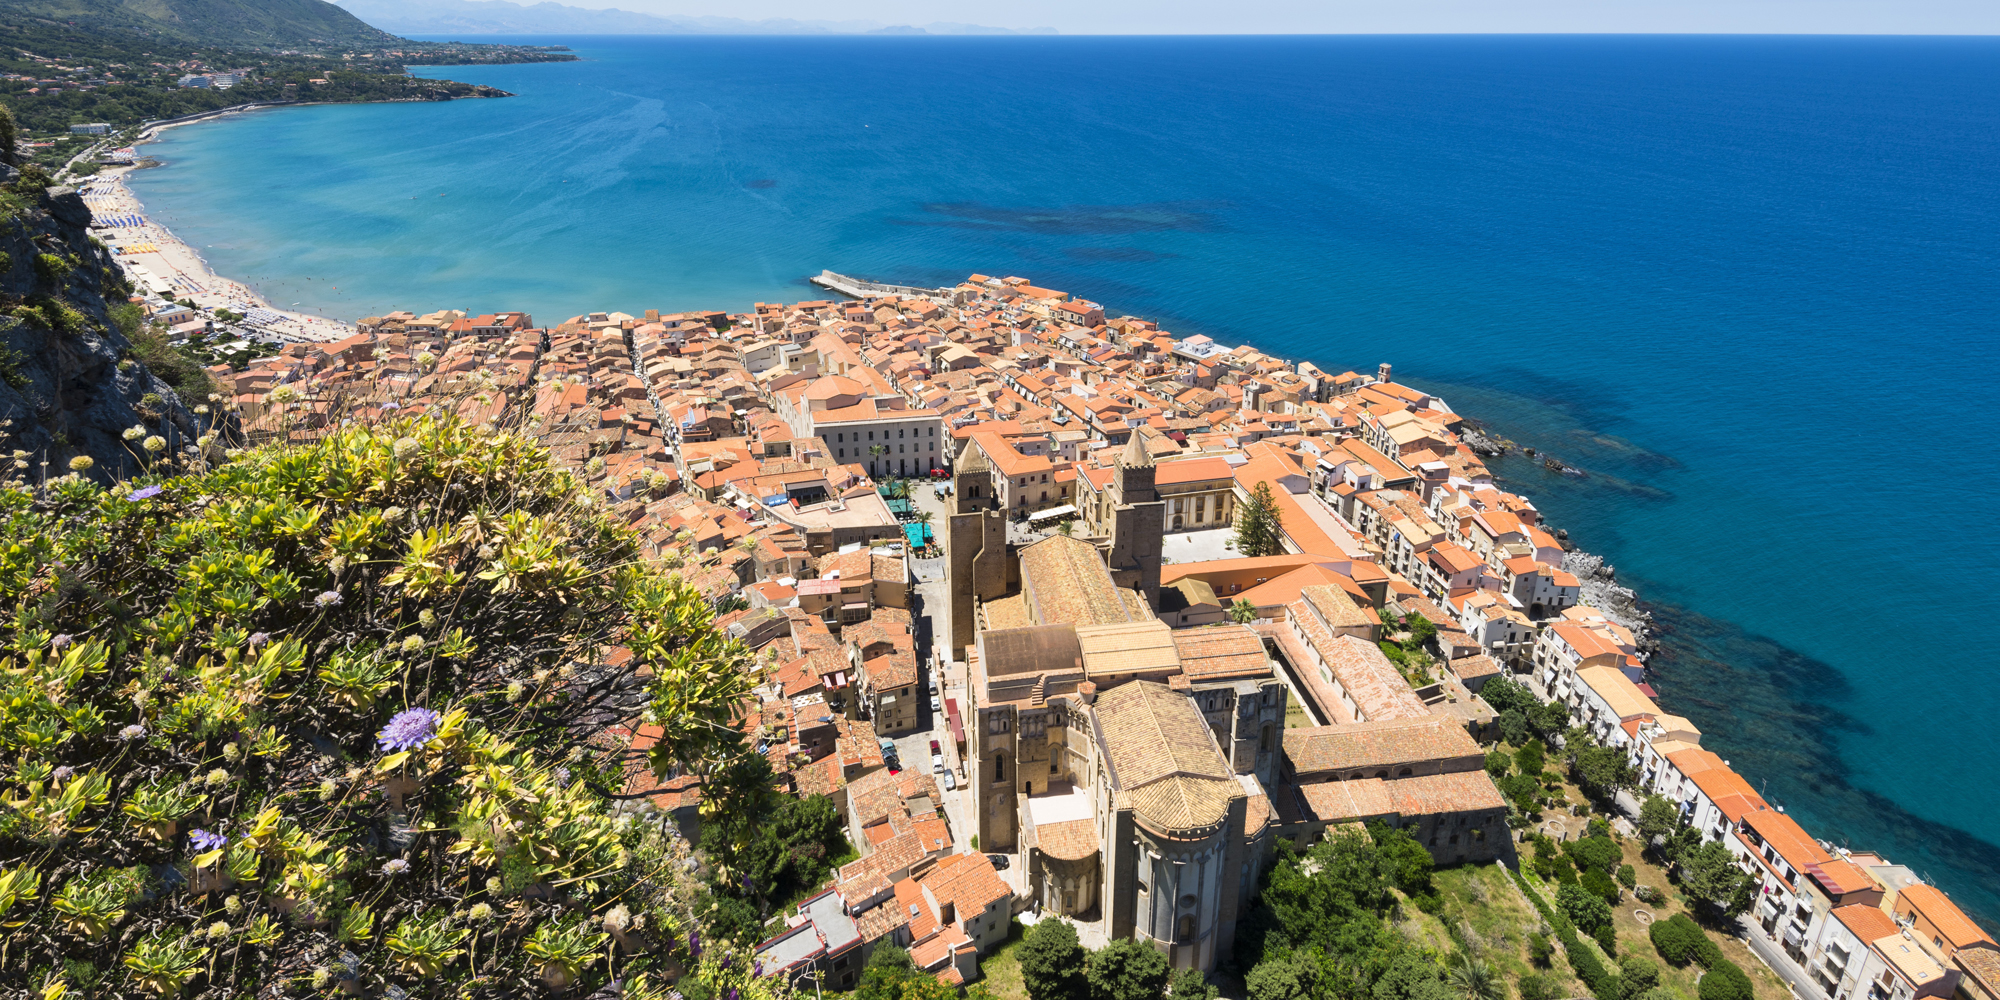 PICTURES OF ITALY: A PLACE OF GREAT BEAUTY